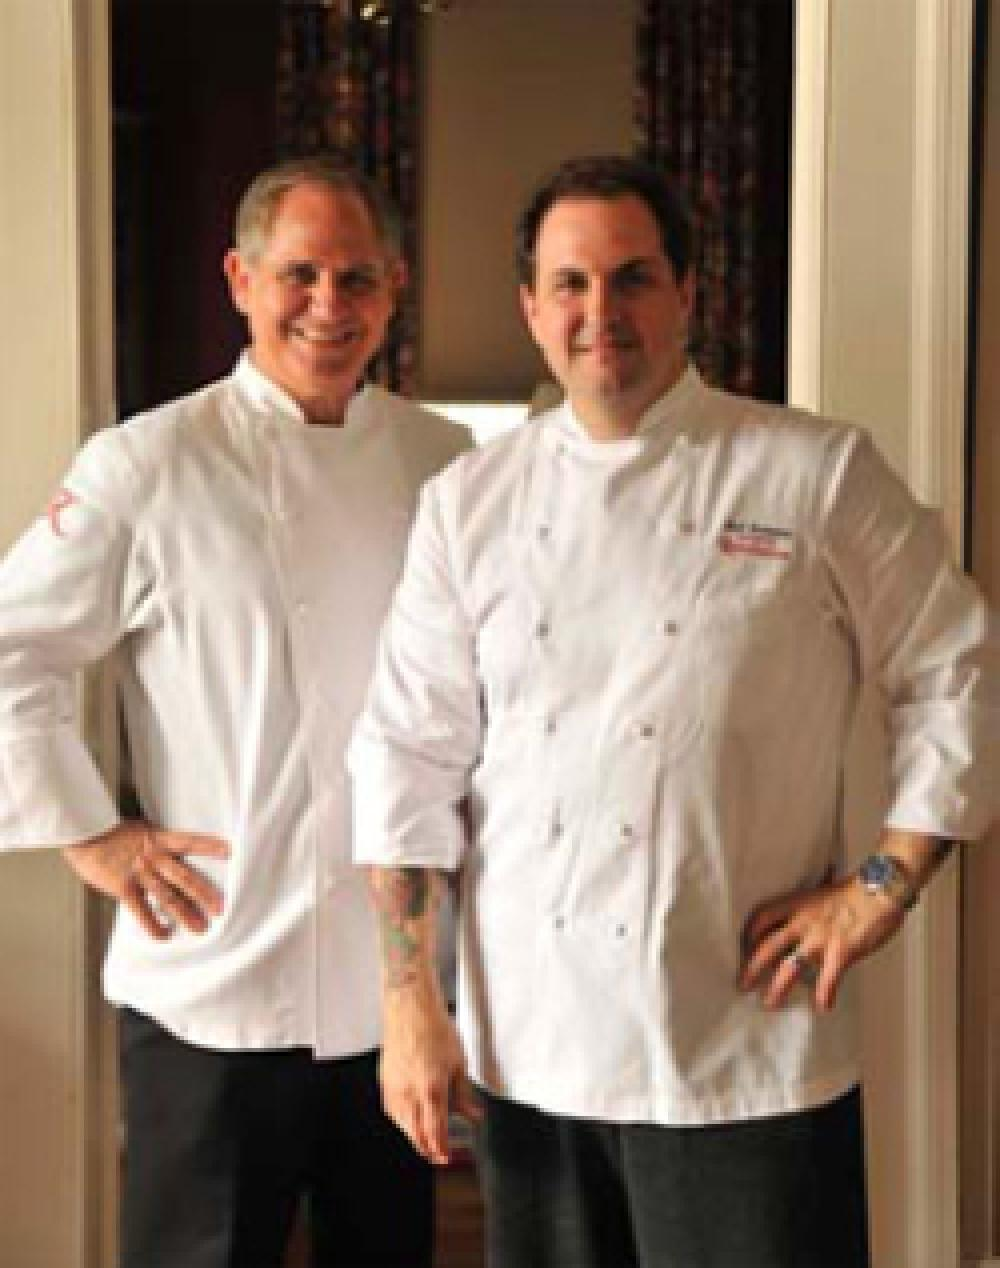 R'evolution aims to evolve New Orleans cuisine